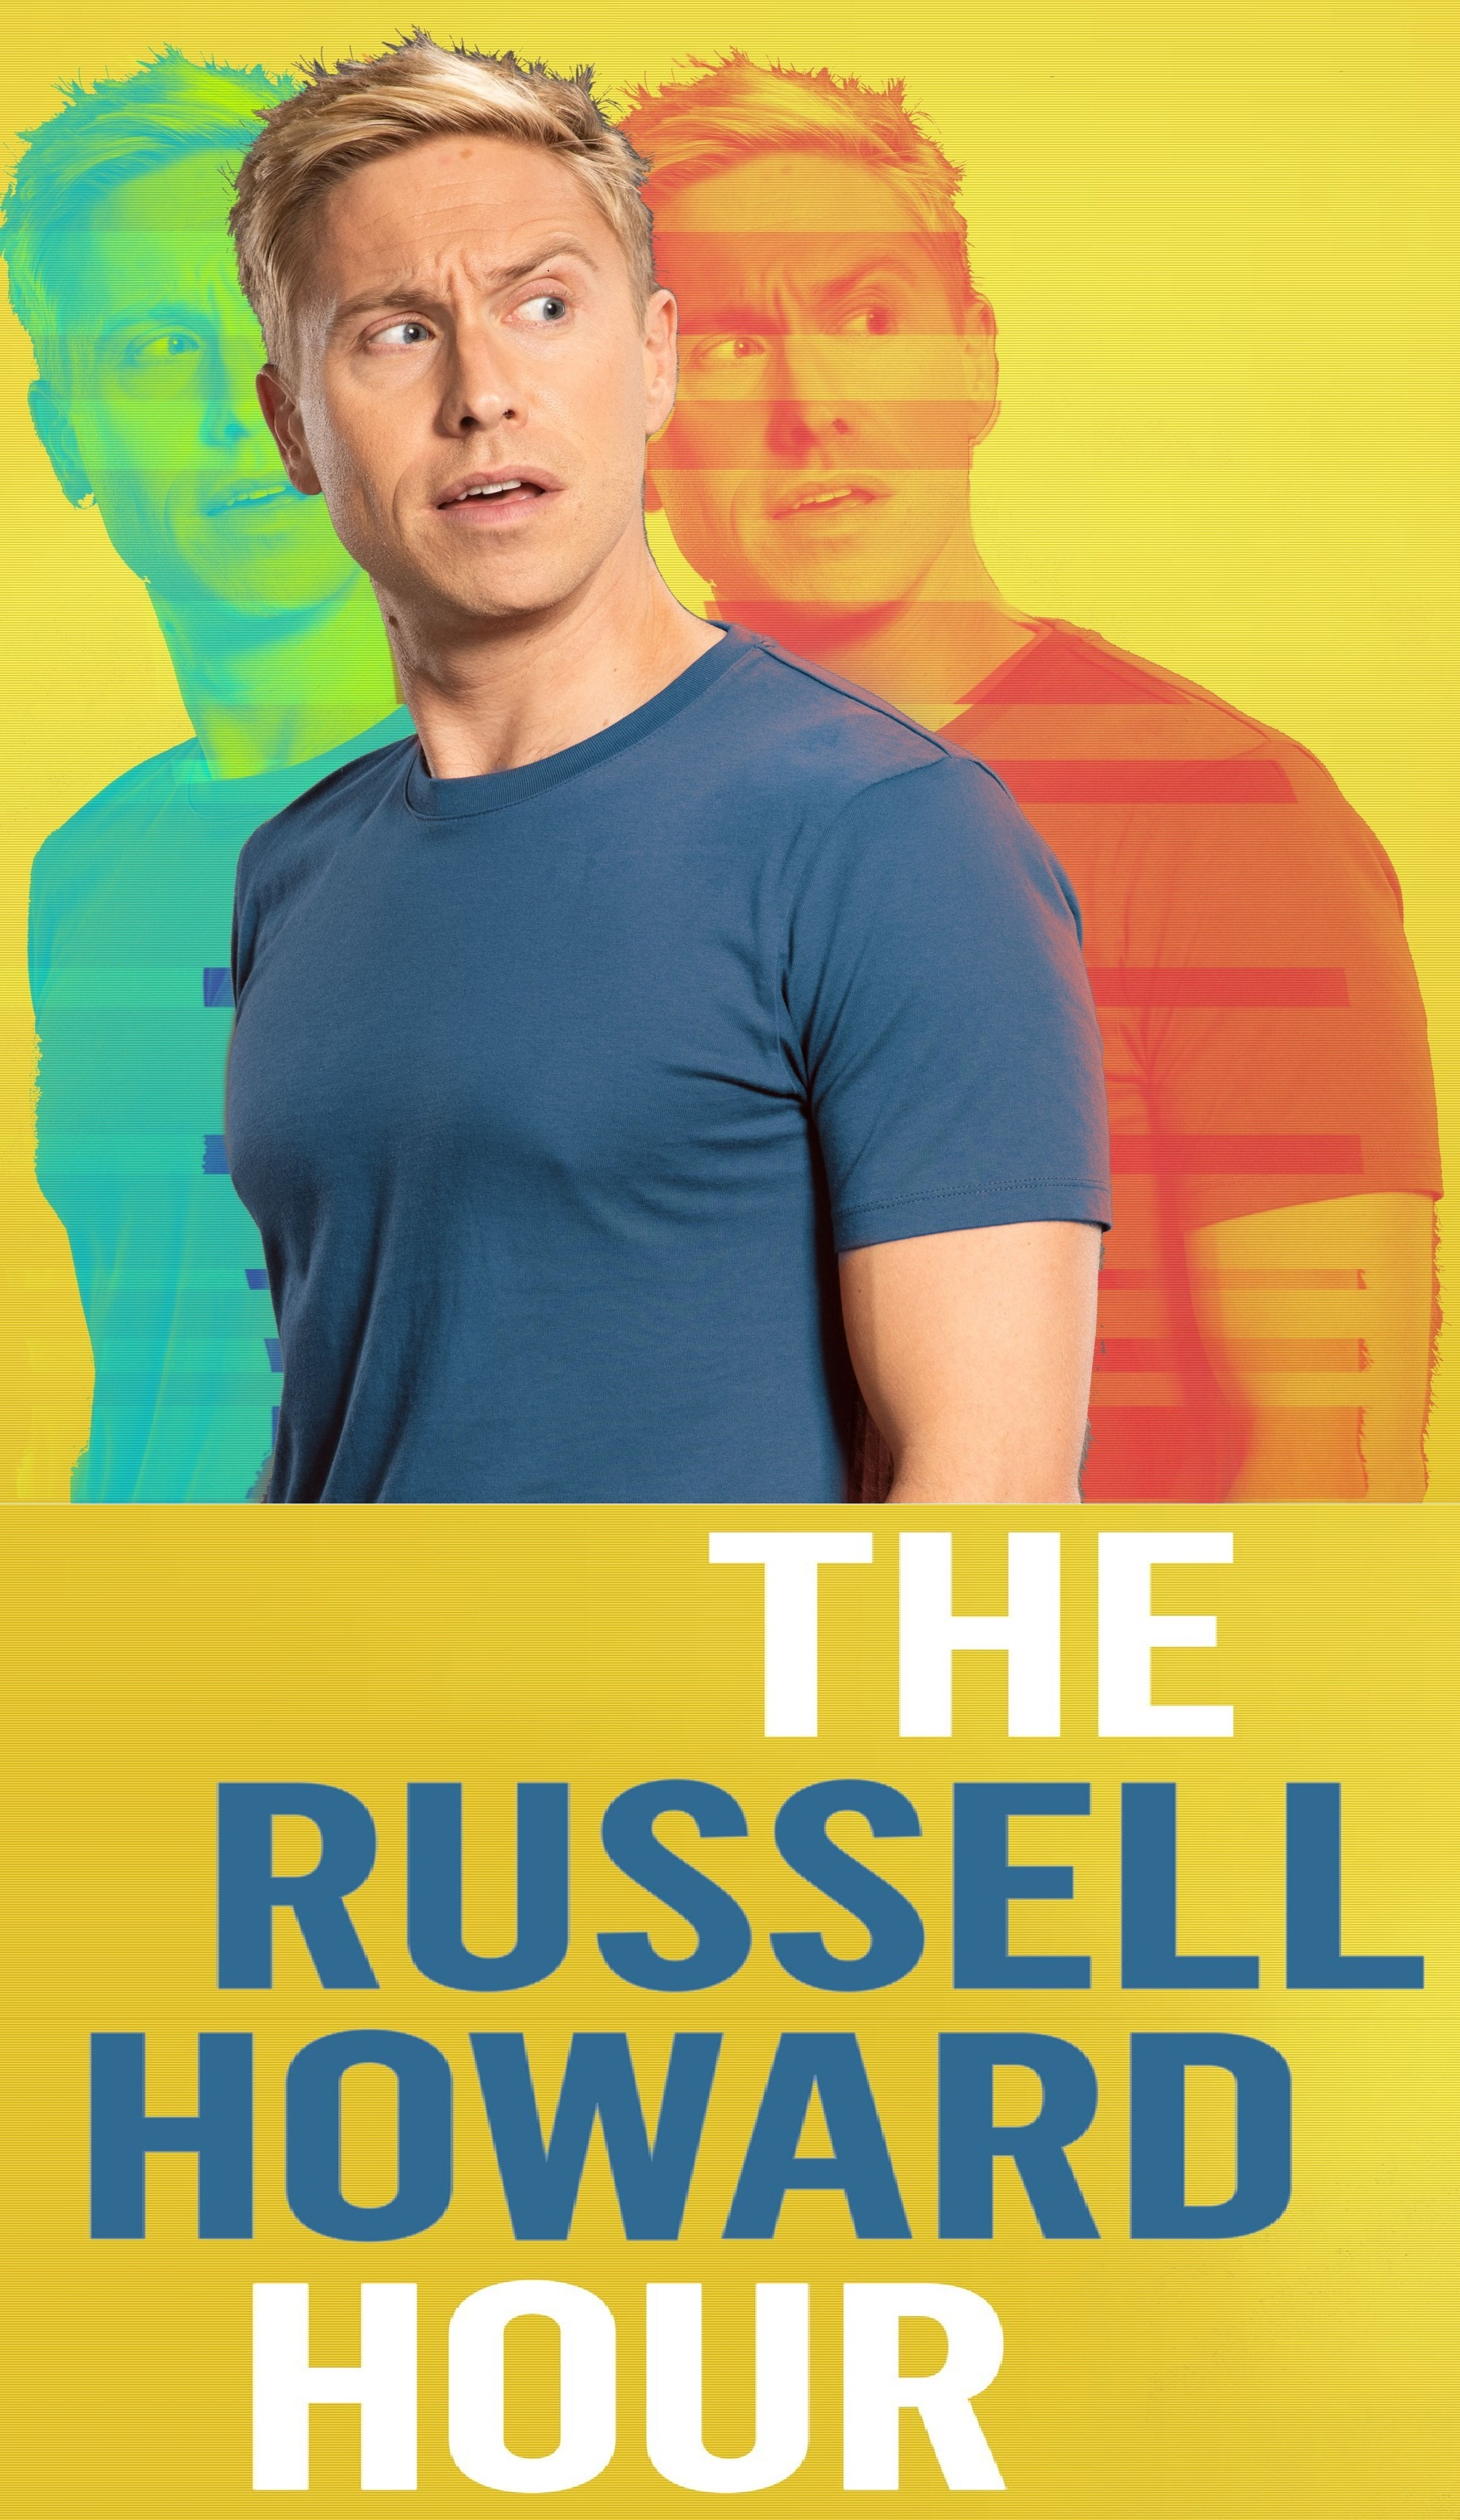 The Russell Howard Hour - Season 4 Episode 10